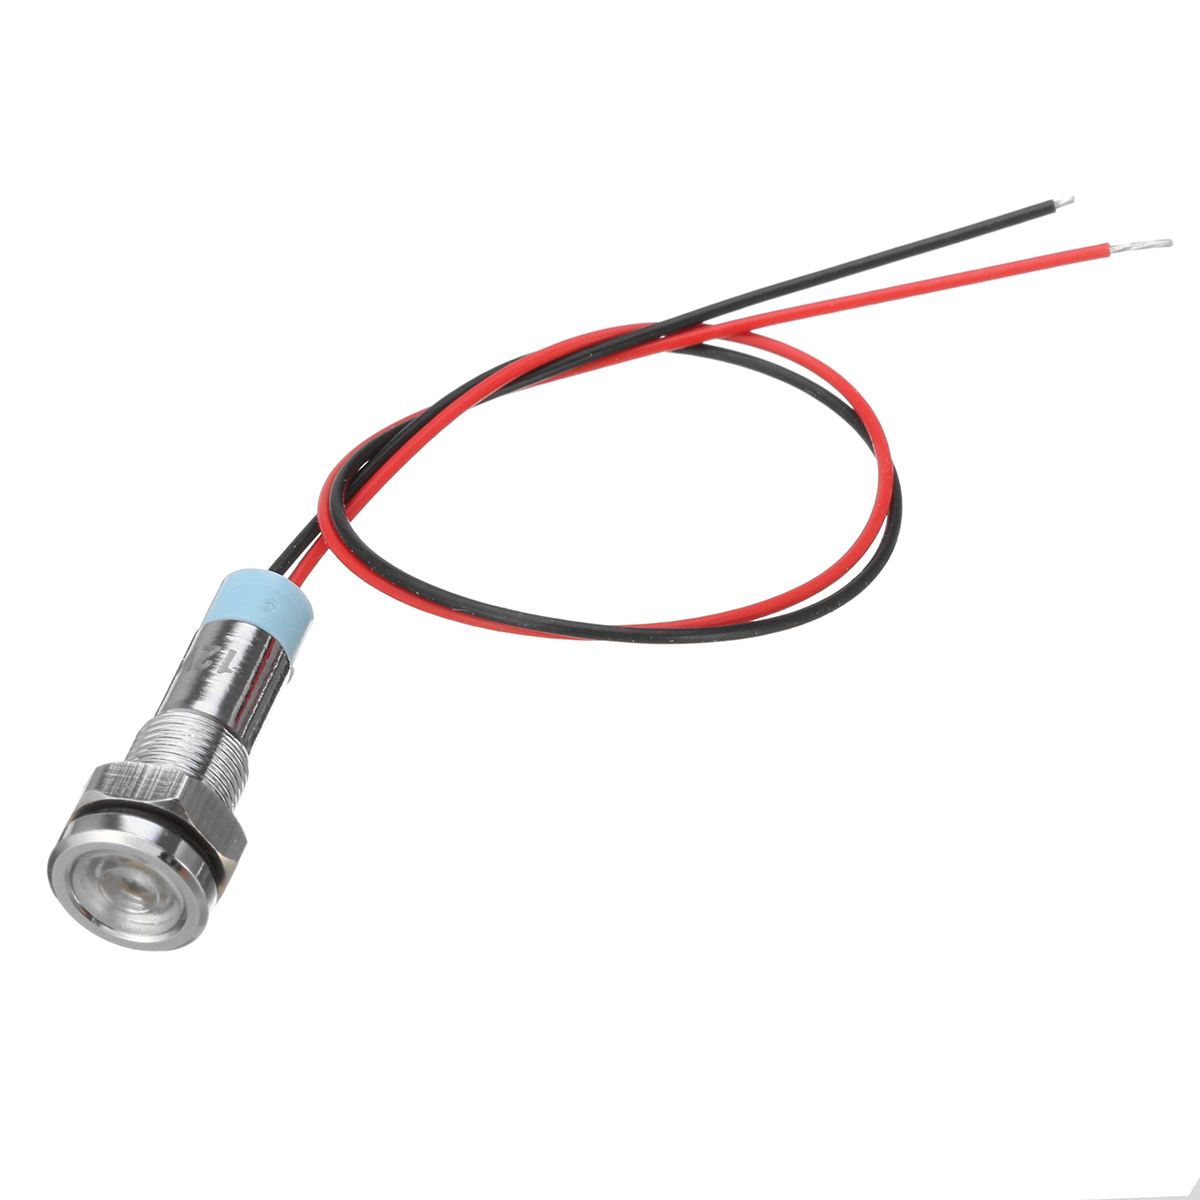 12V 6mm LED Indicator Light Pilot Dash Lamp Motorccyle Car